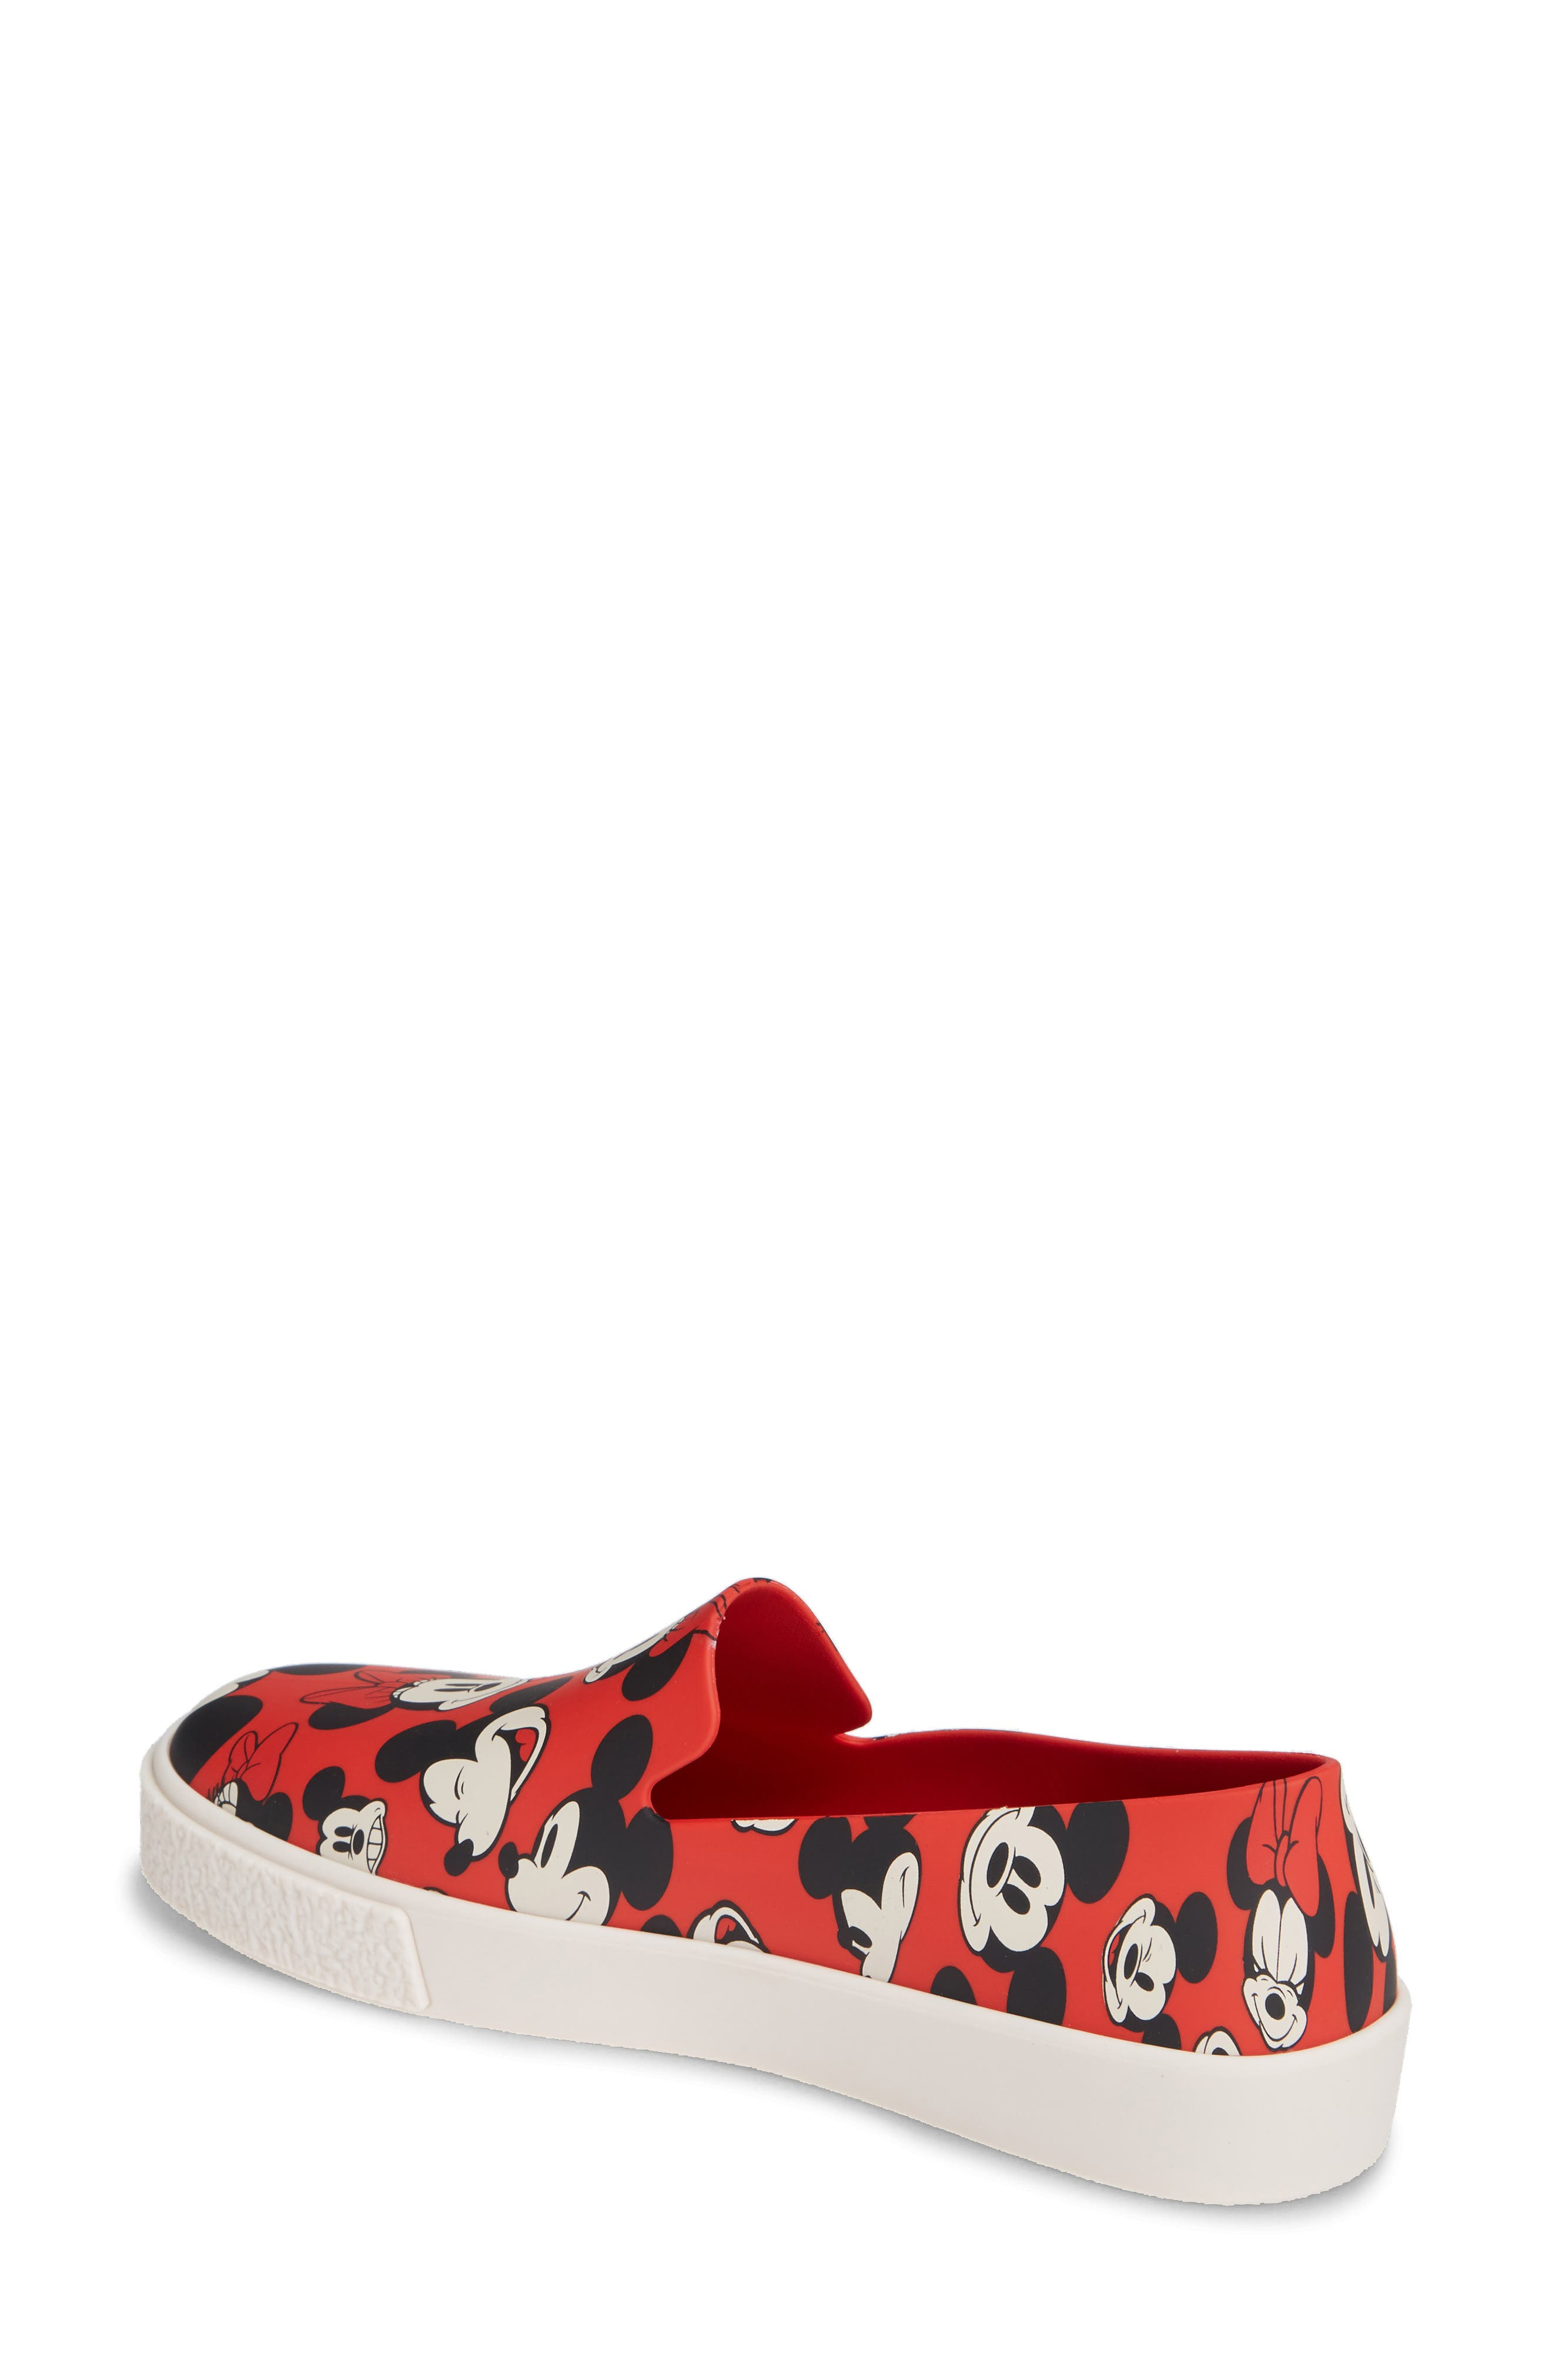 Ground Mickey Mouse Slip-On Sneaker,                             Alternate thumbnail 2, color,                             RED/ WHITE FABRIC